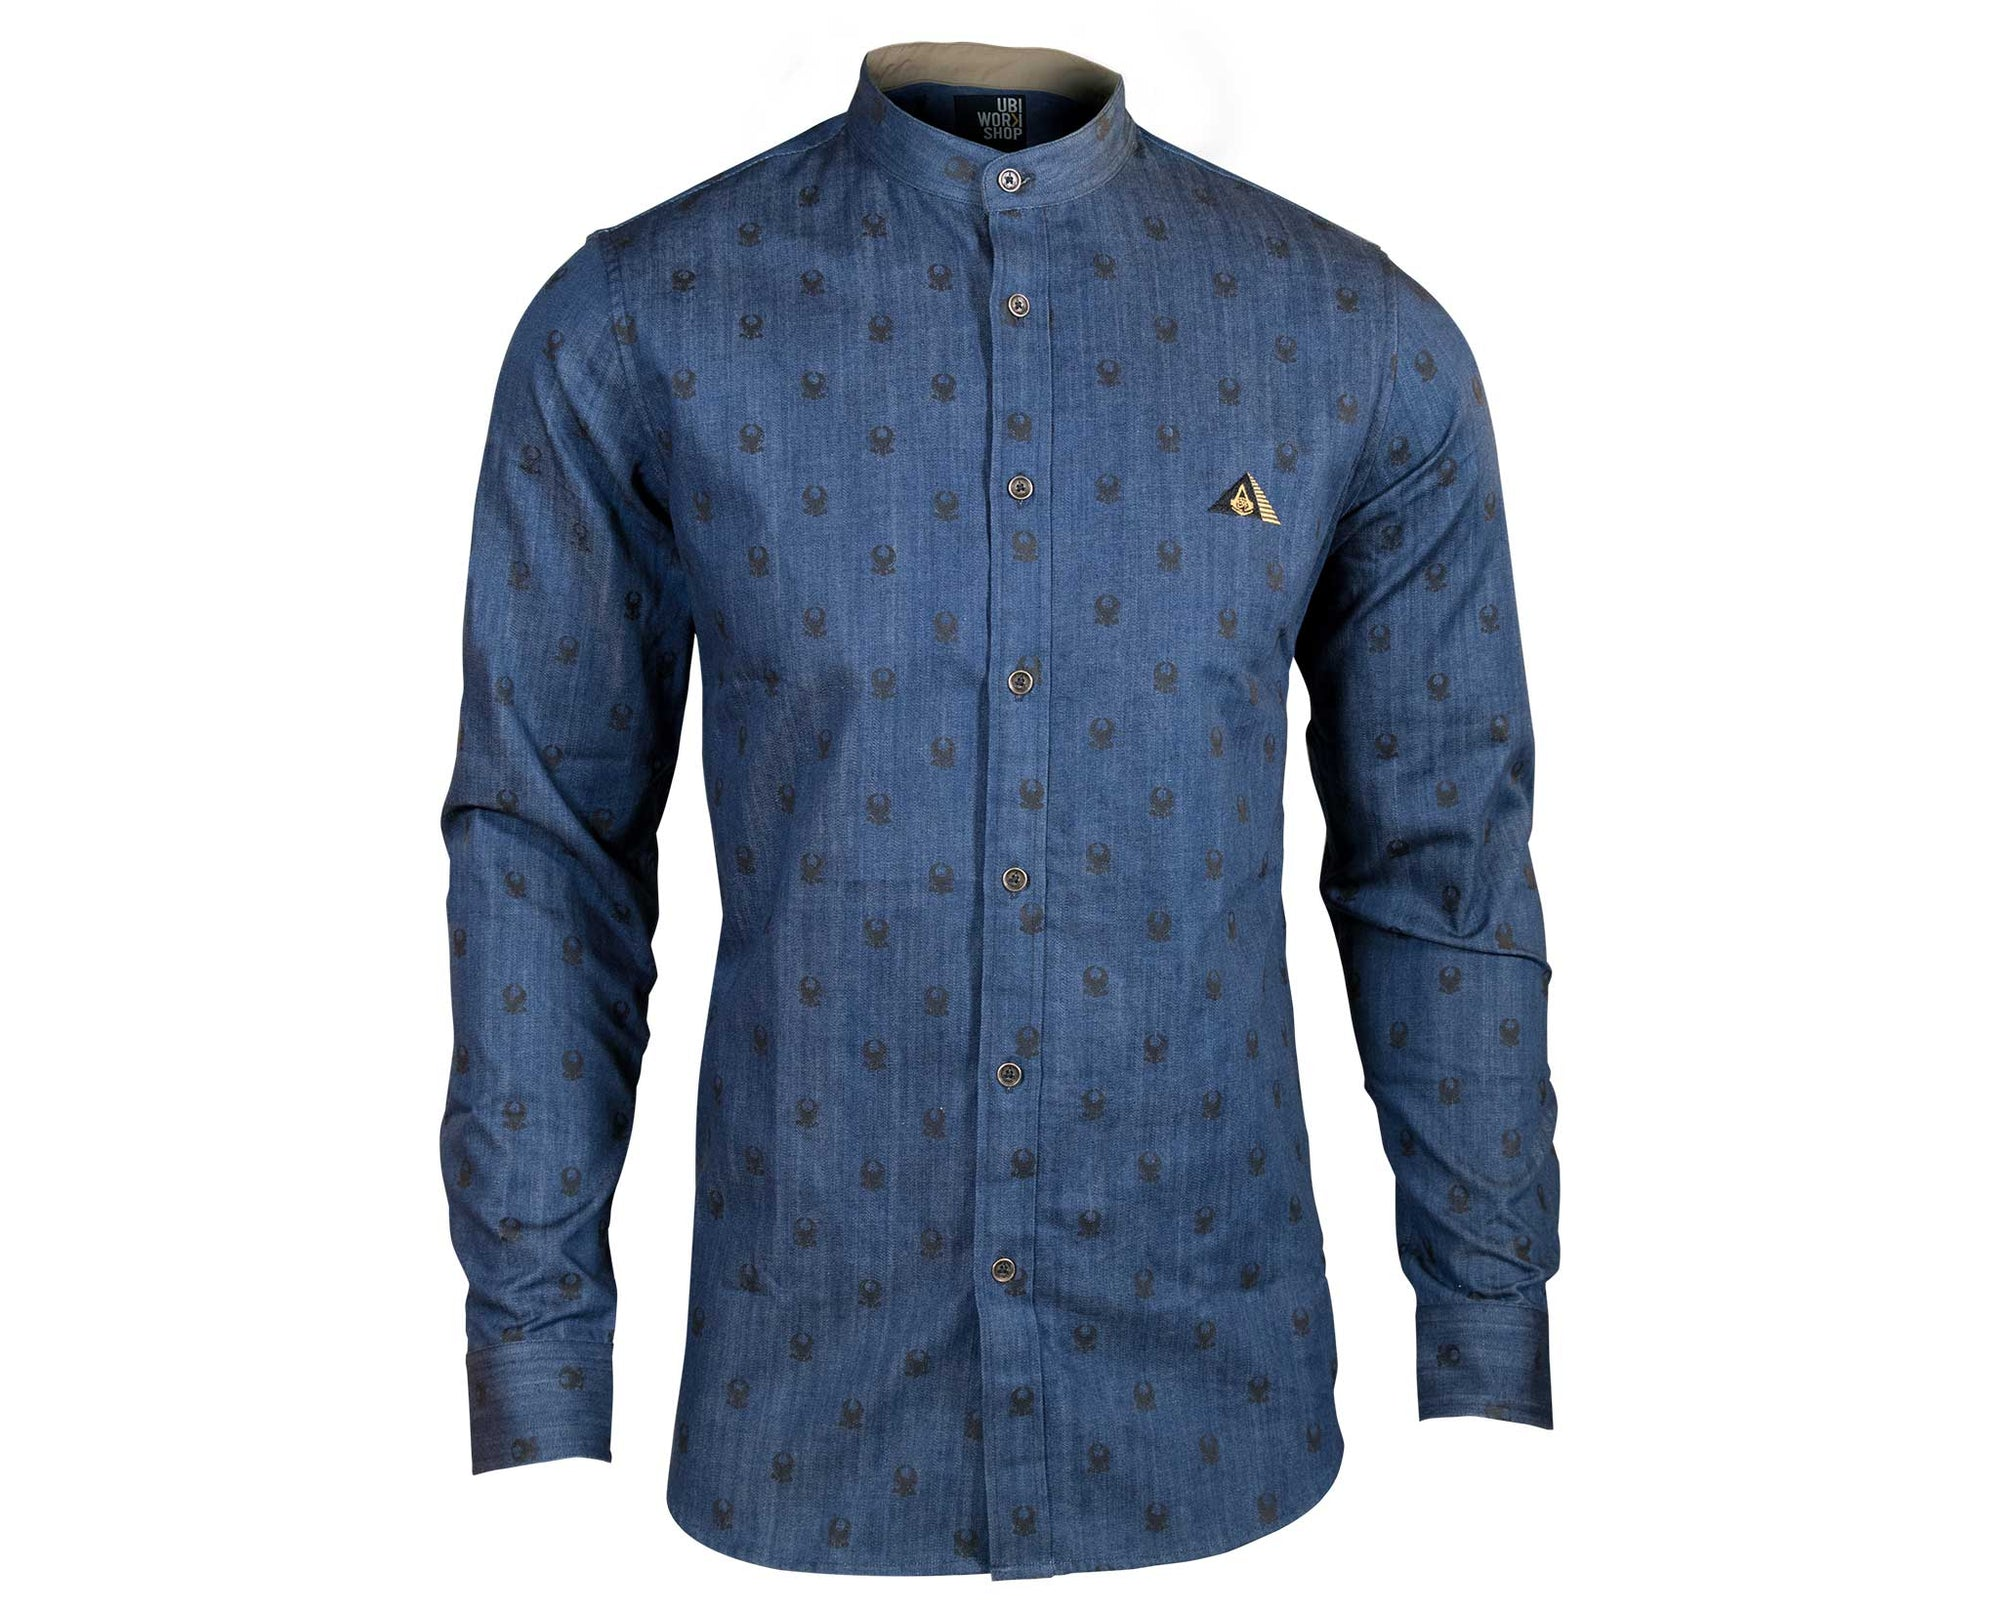 Bayek Dress Shirt Navy - Assassin's Creed Origins